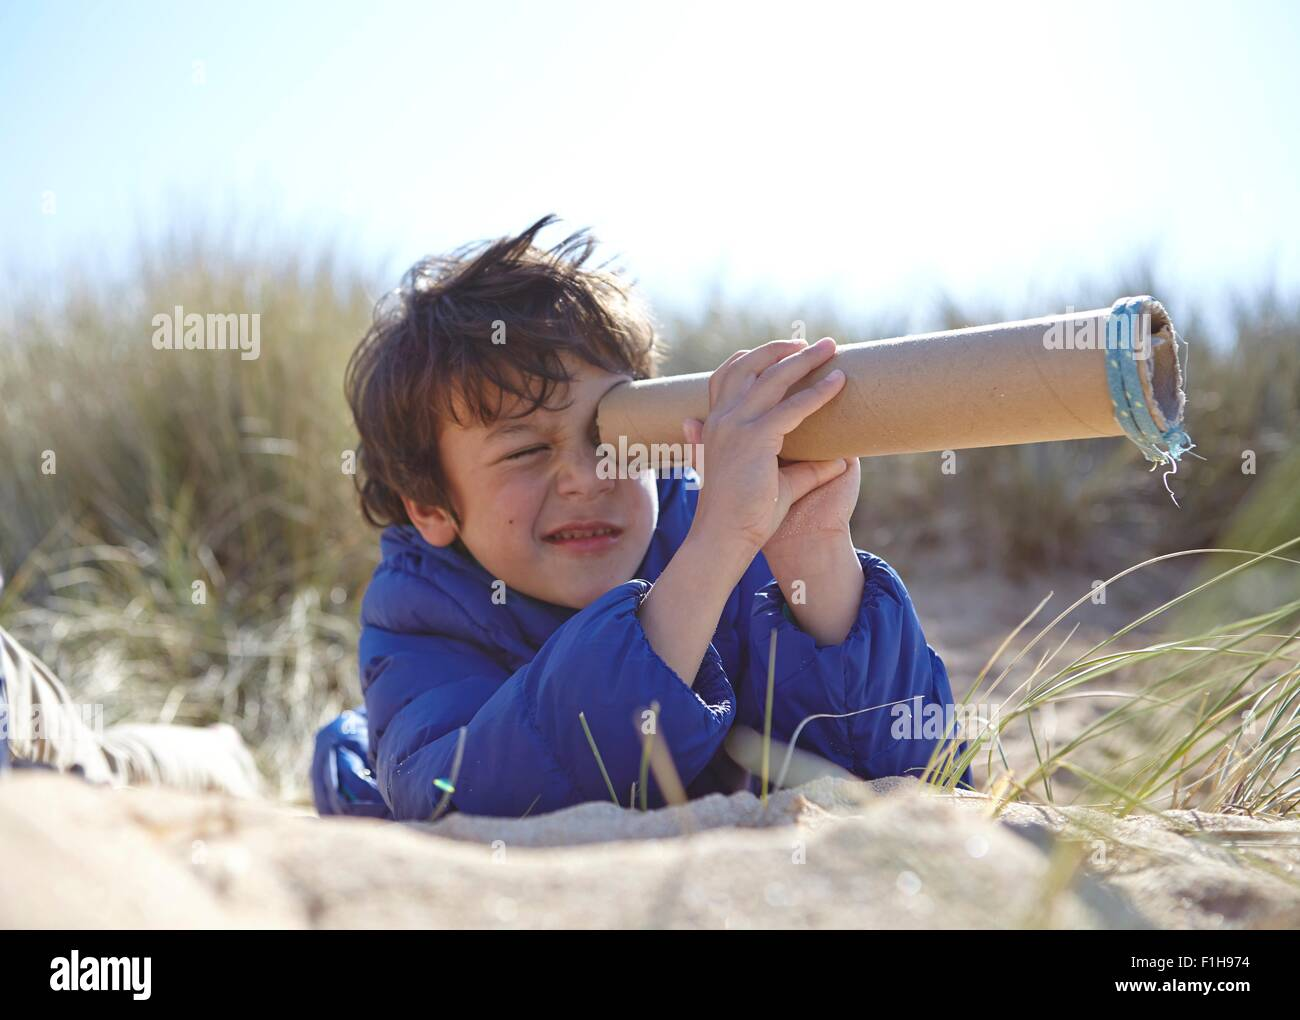 Young boy on beach, looking through pretend telescope - Stock Image